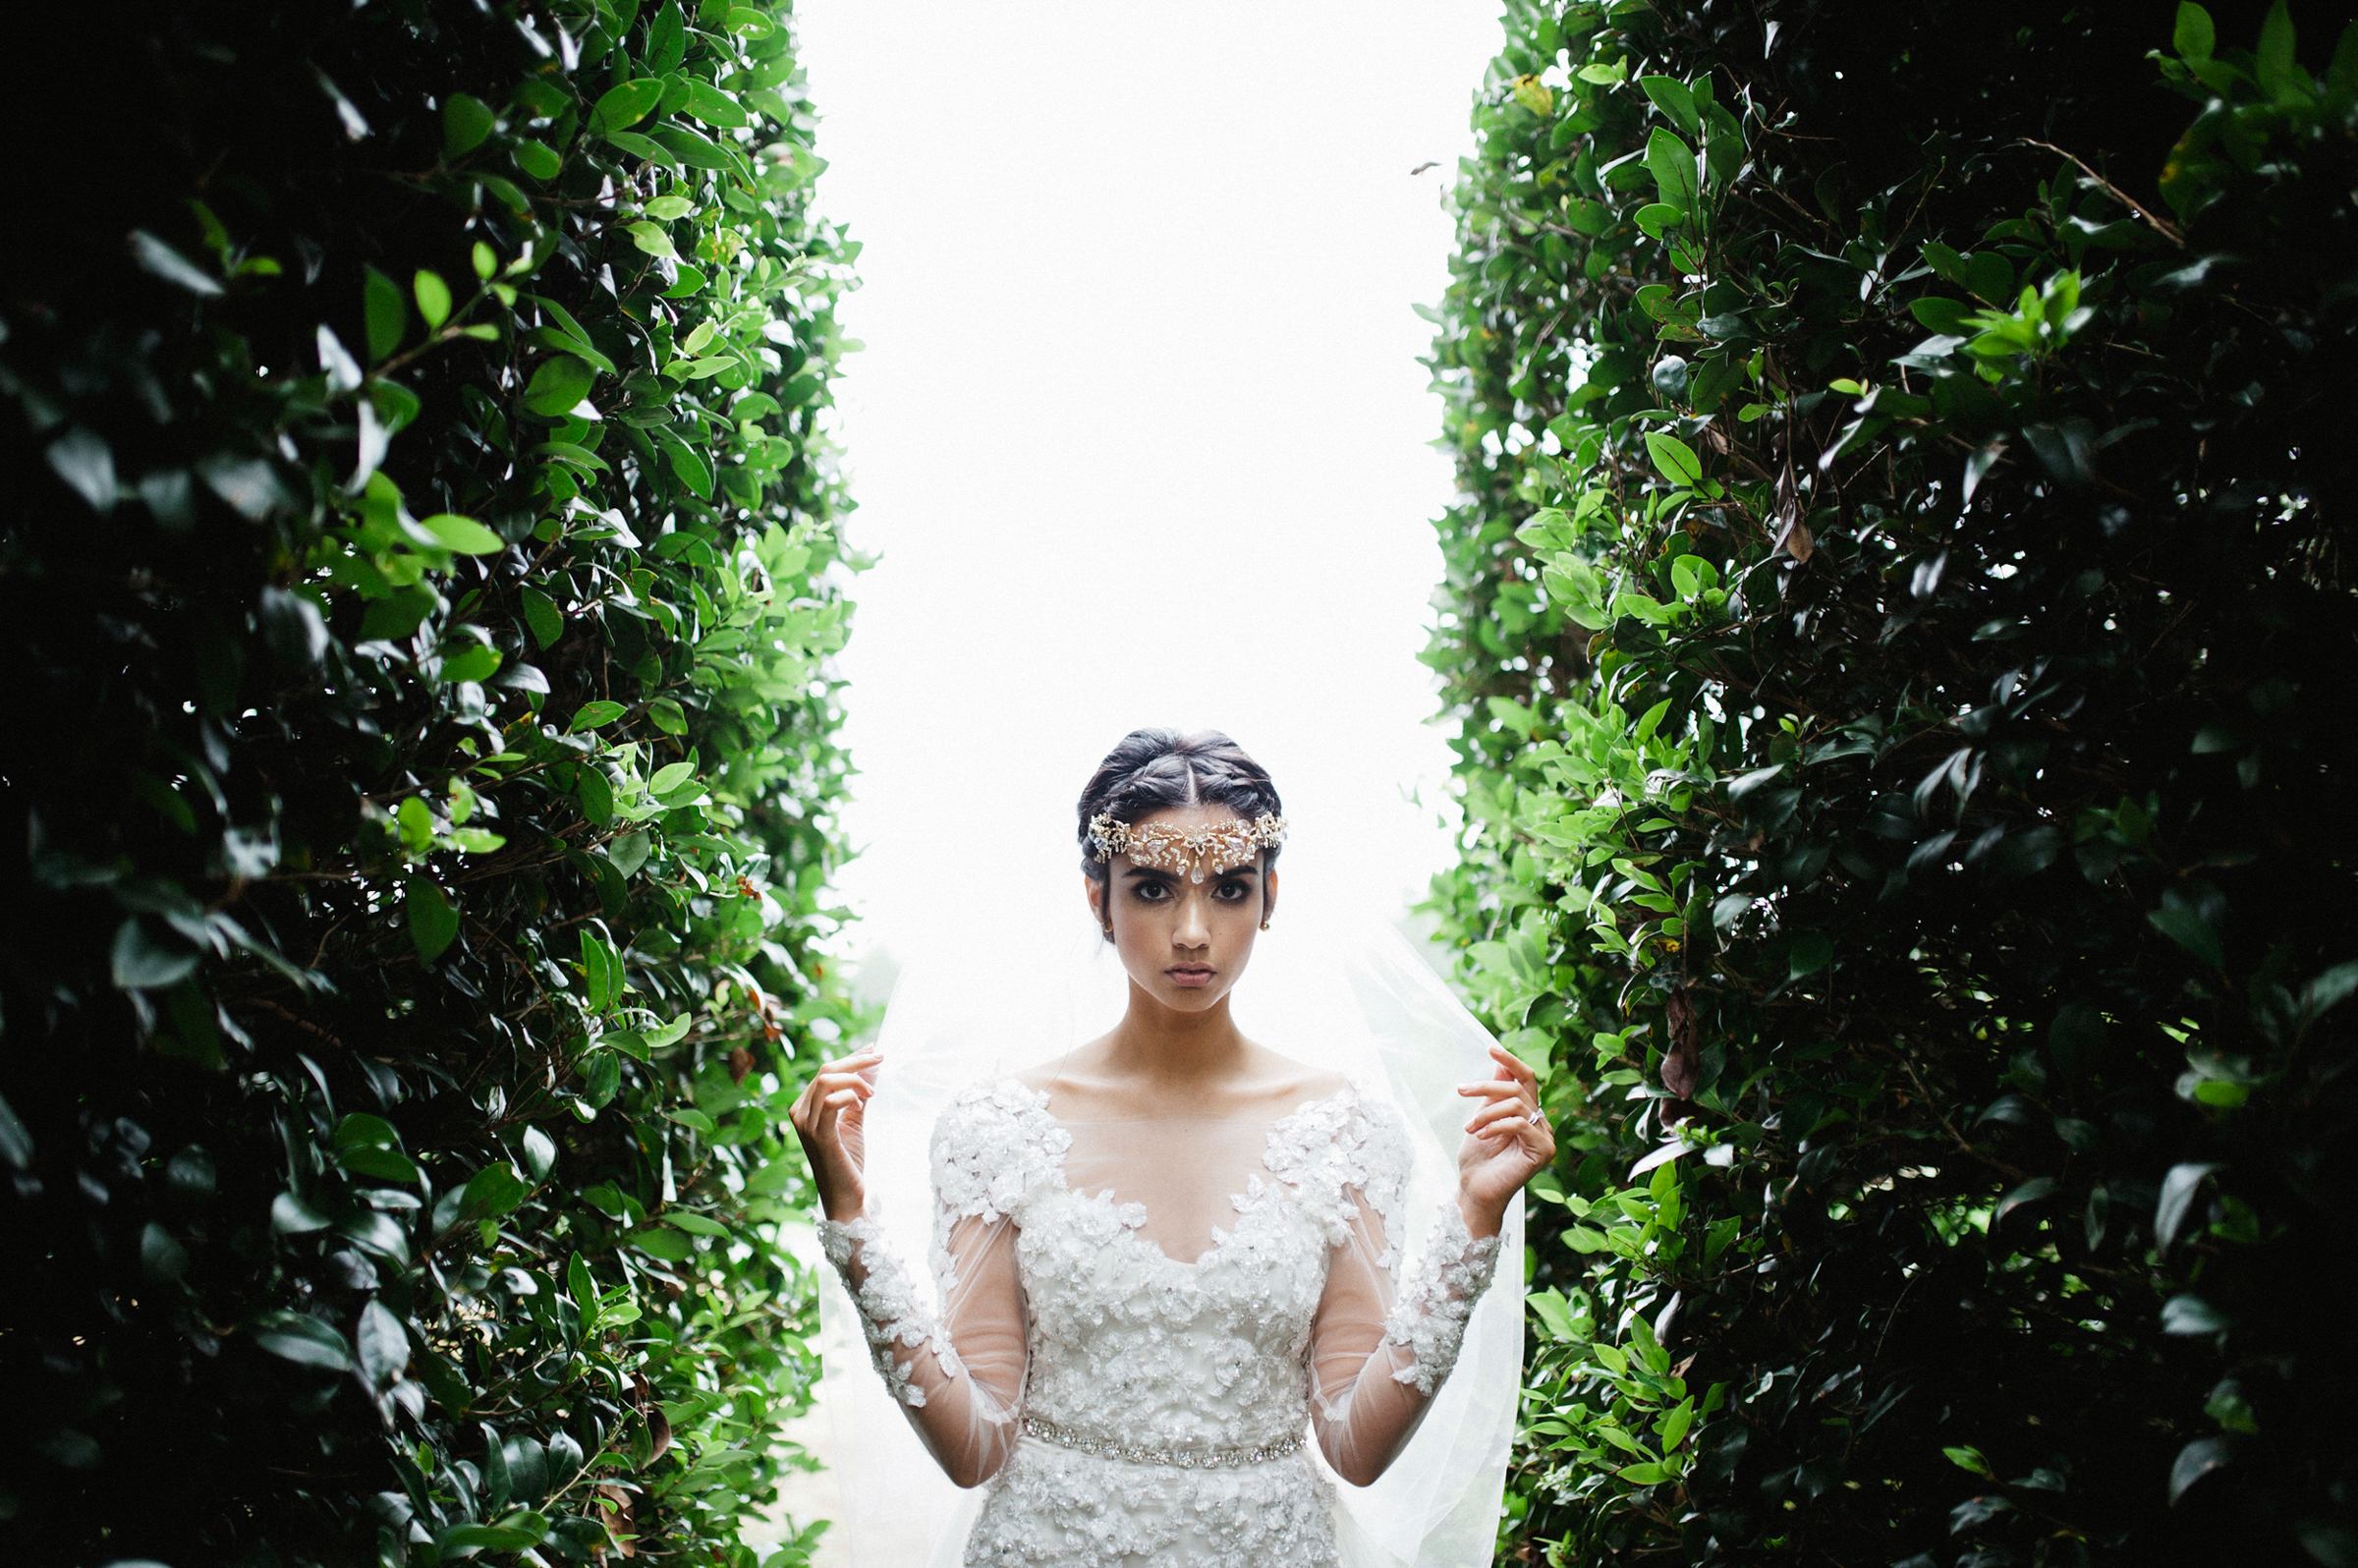 Bride in lace dress framed by hedges - photo by Richard Israel Photography